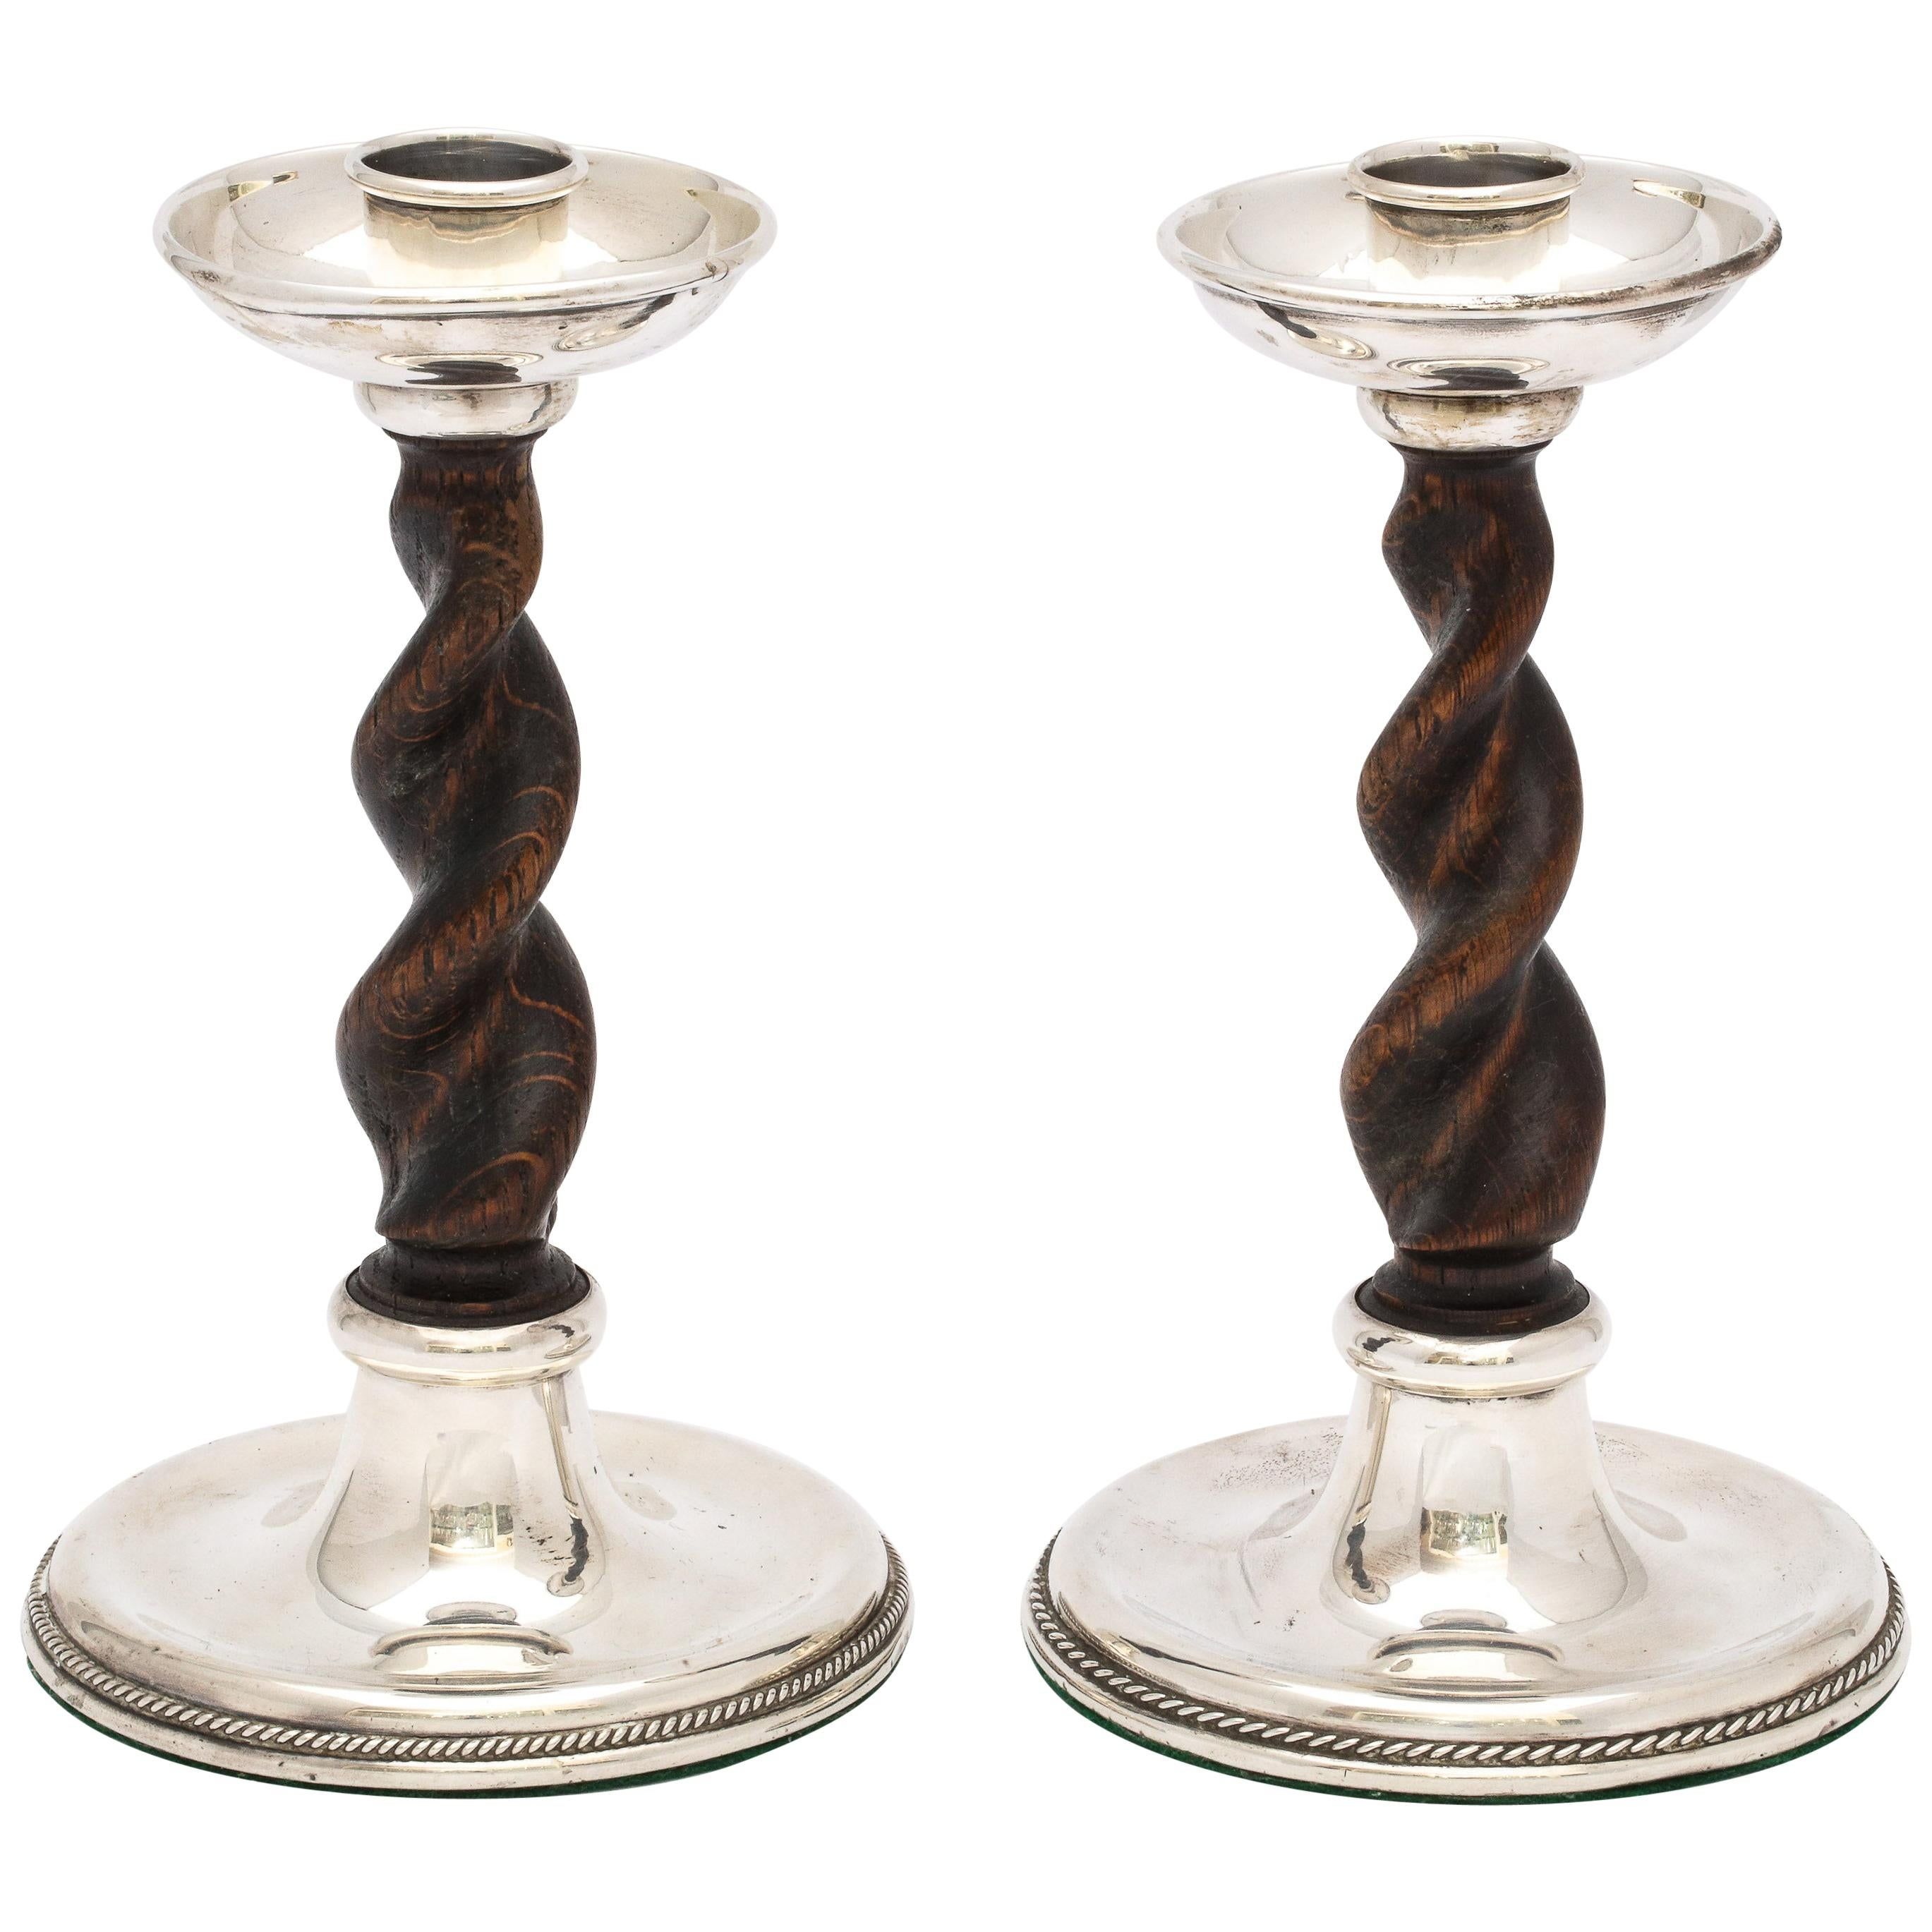 Arts & Crafts Pair of Sterling Silver-Mounted Wood Barley Twist Candlesticks